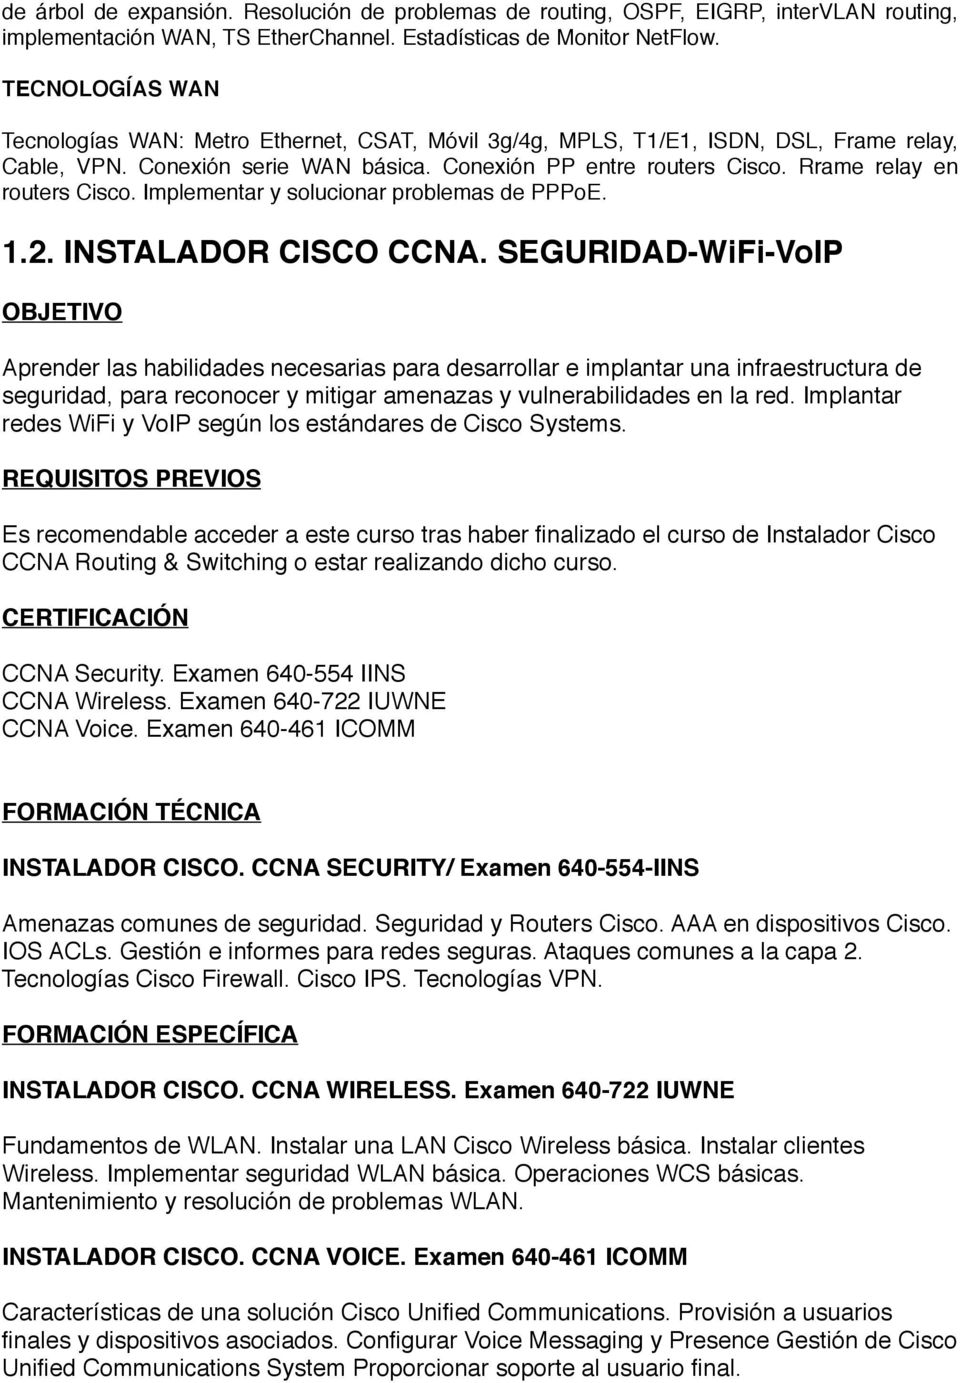 Rrame relay en routers Cisco. Implementar y solucionar problemas de PPPoE. 1.2. INSTALADOR CISCO CCNA.